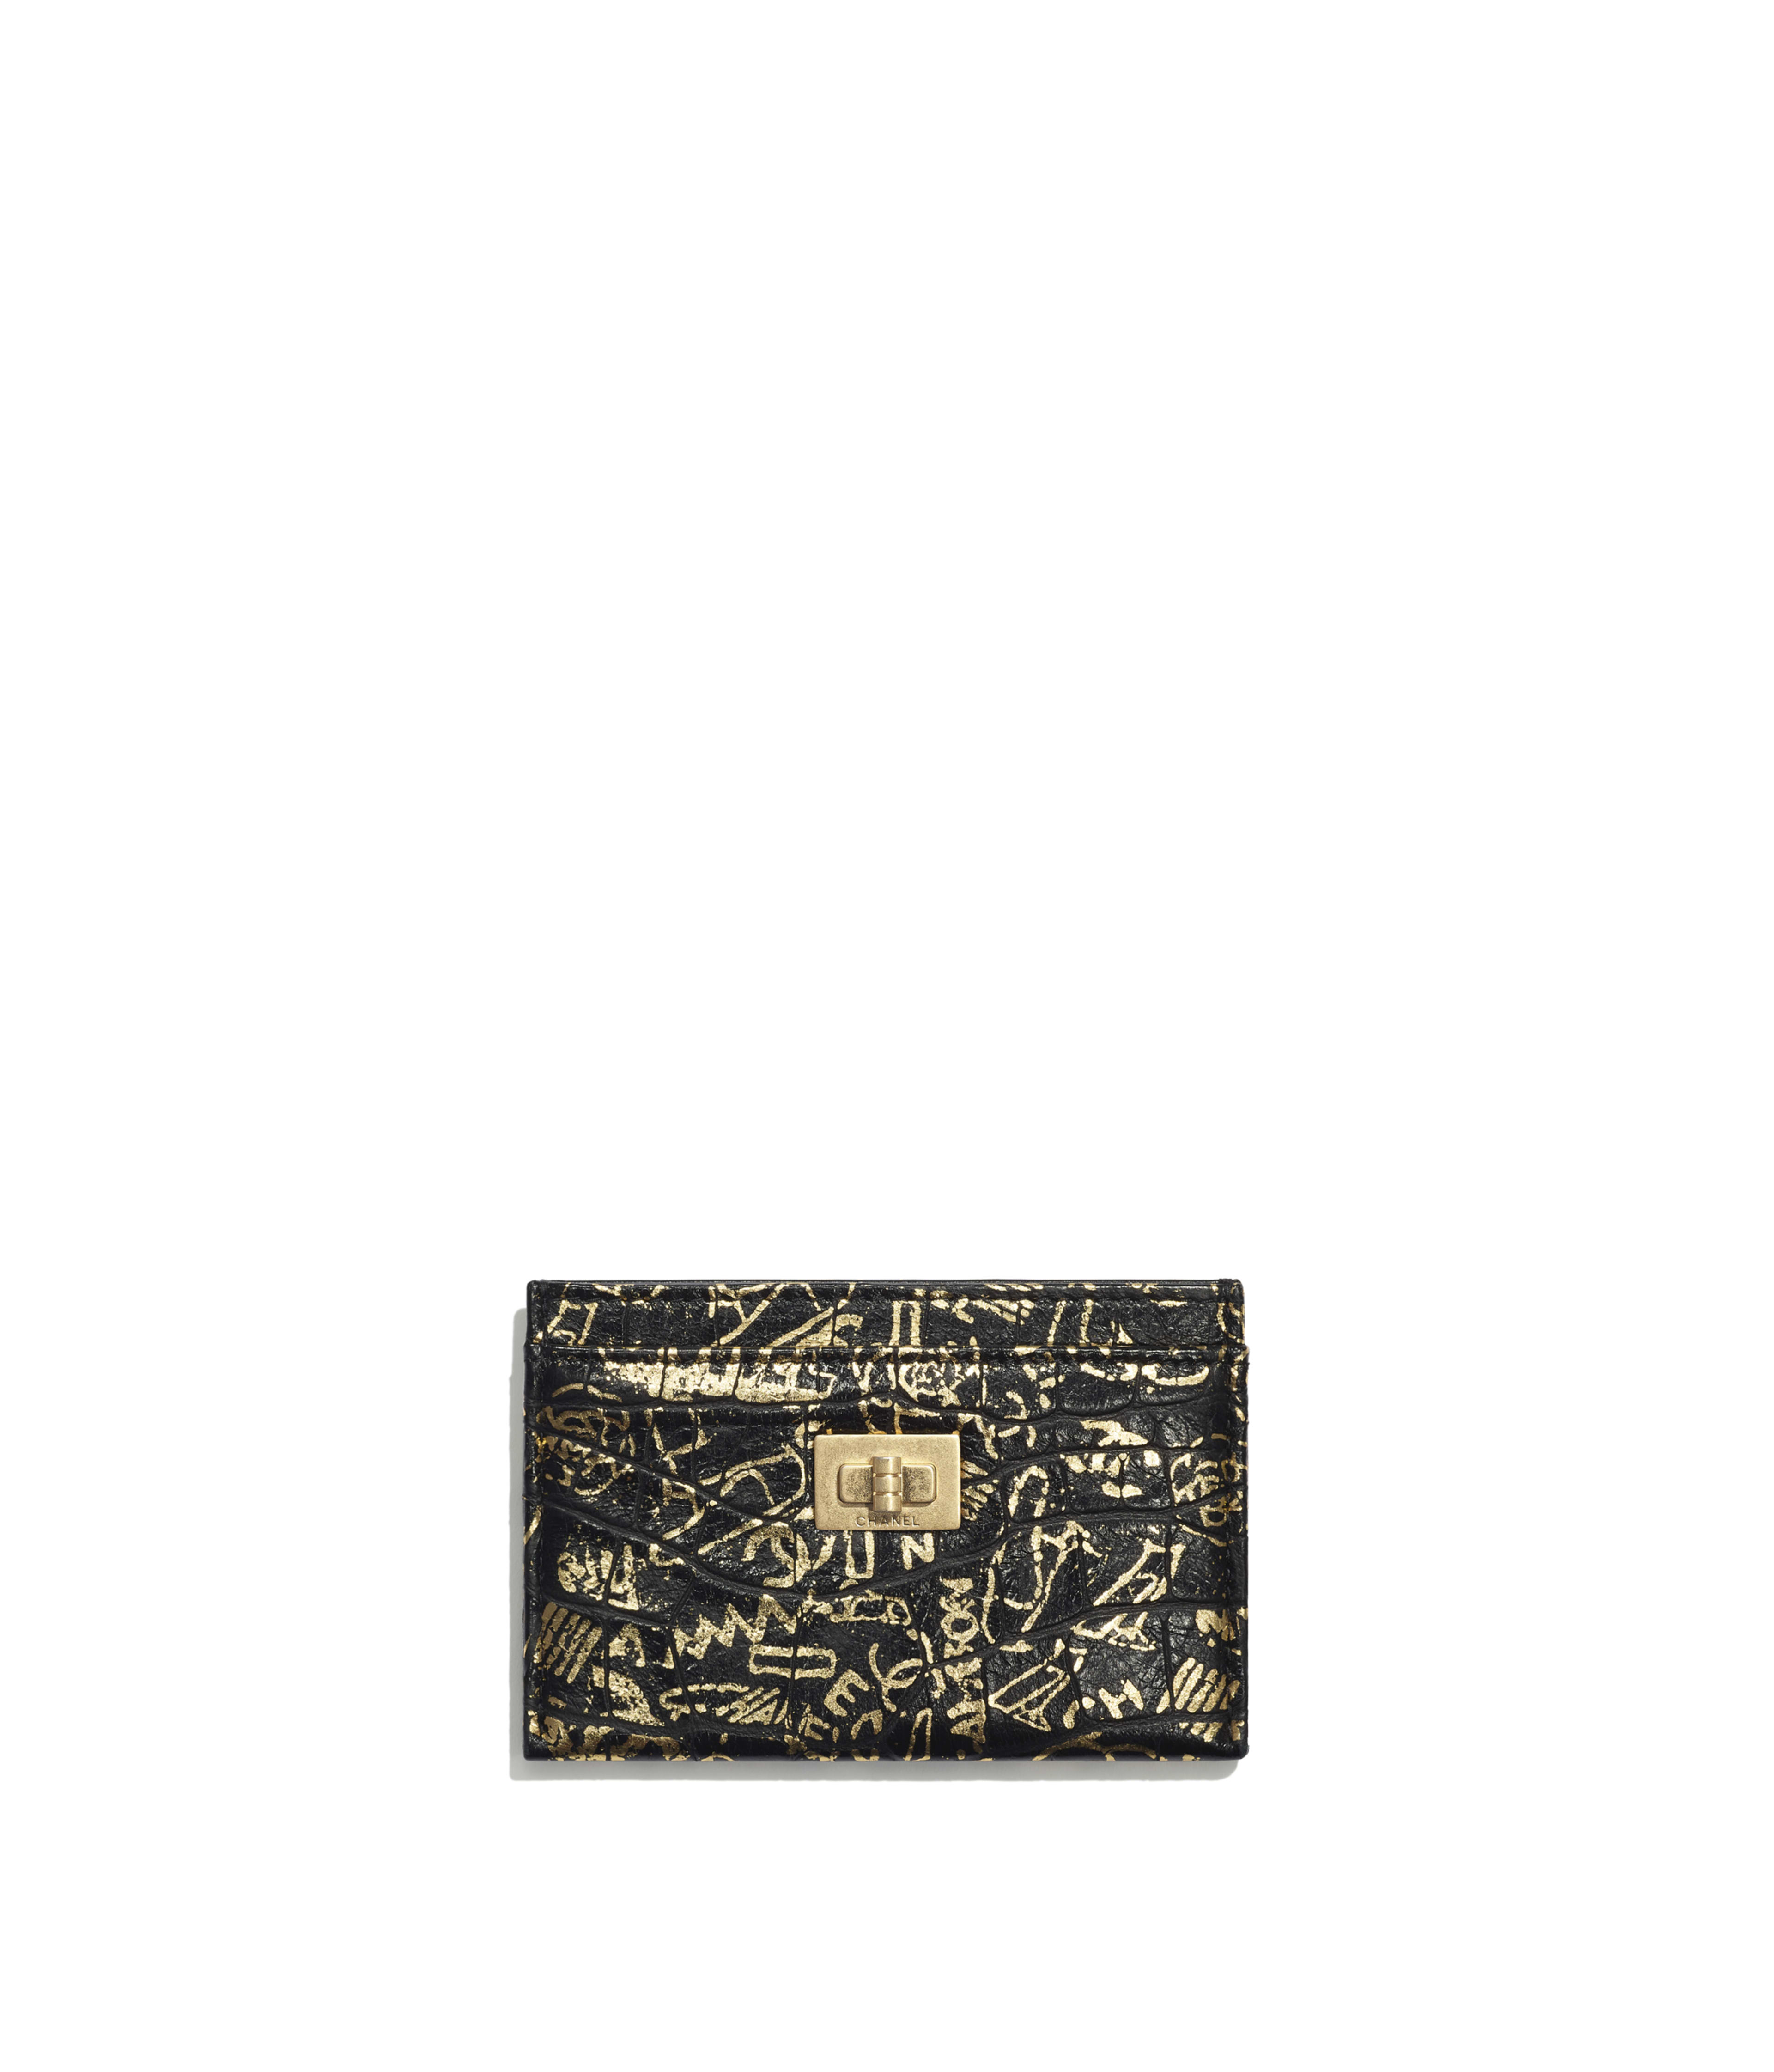 d6269ccc3ae4 2.55 Card Holder Crocodile Embossed Printed Leather & Gold-Tone Metal, Black  & Gold Ref. A80611B00979N0784